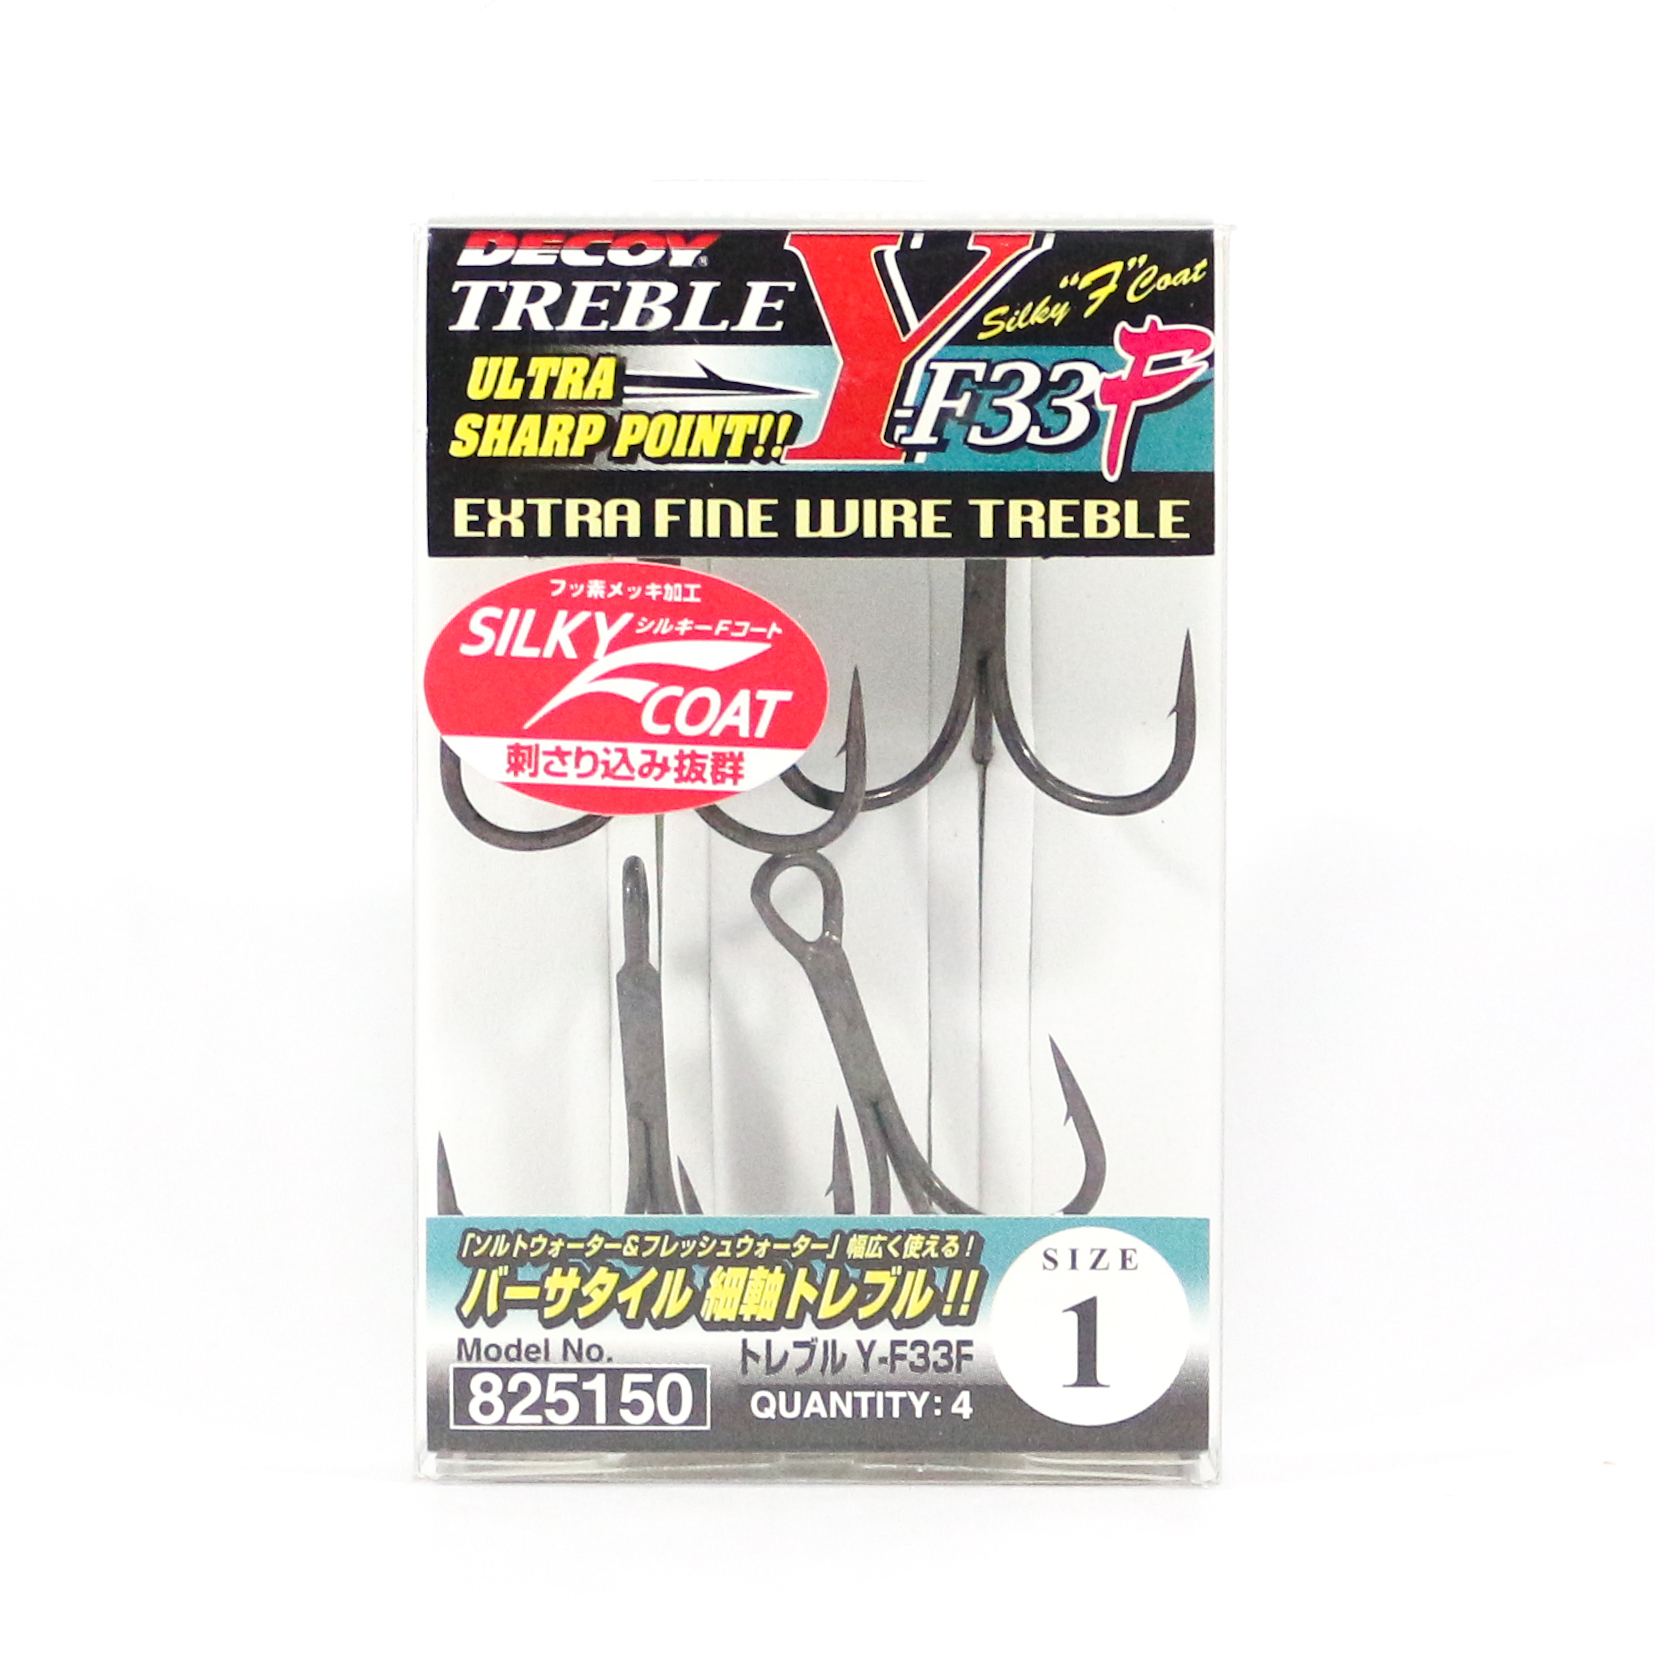 Decoy Y-F33F Treble Hook Fine Wire Treble Hooks Size 1 (5150)